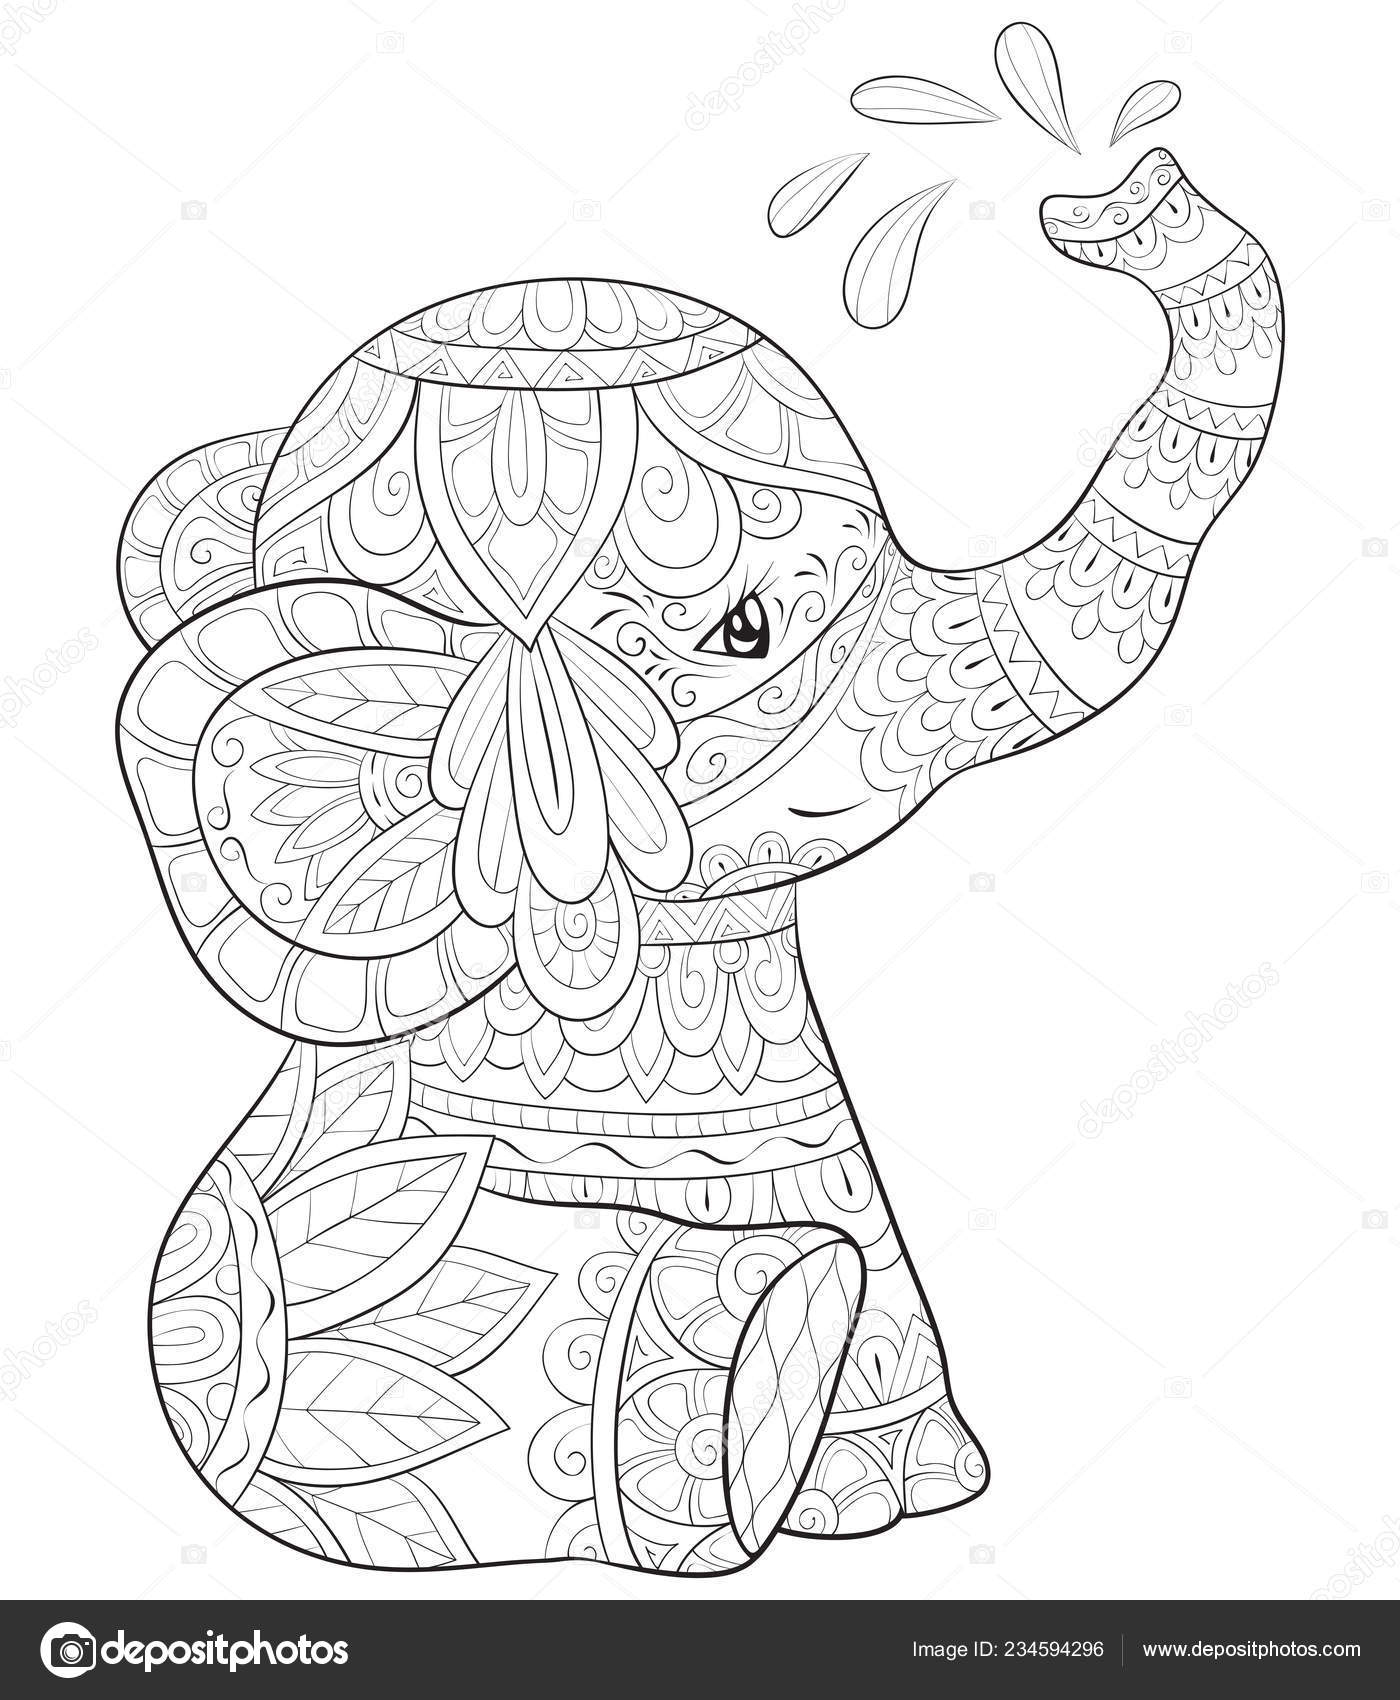 relaxation animal coloring pages amazoncom really relaxing colouring book 6 indian animal pages relaxation coloring